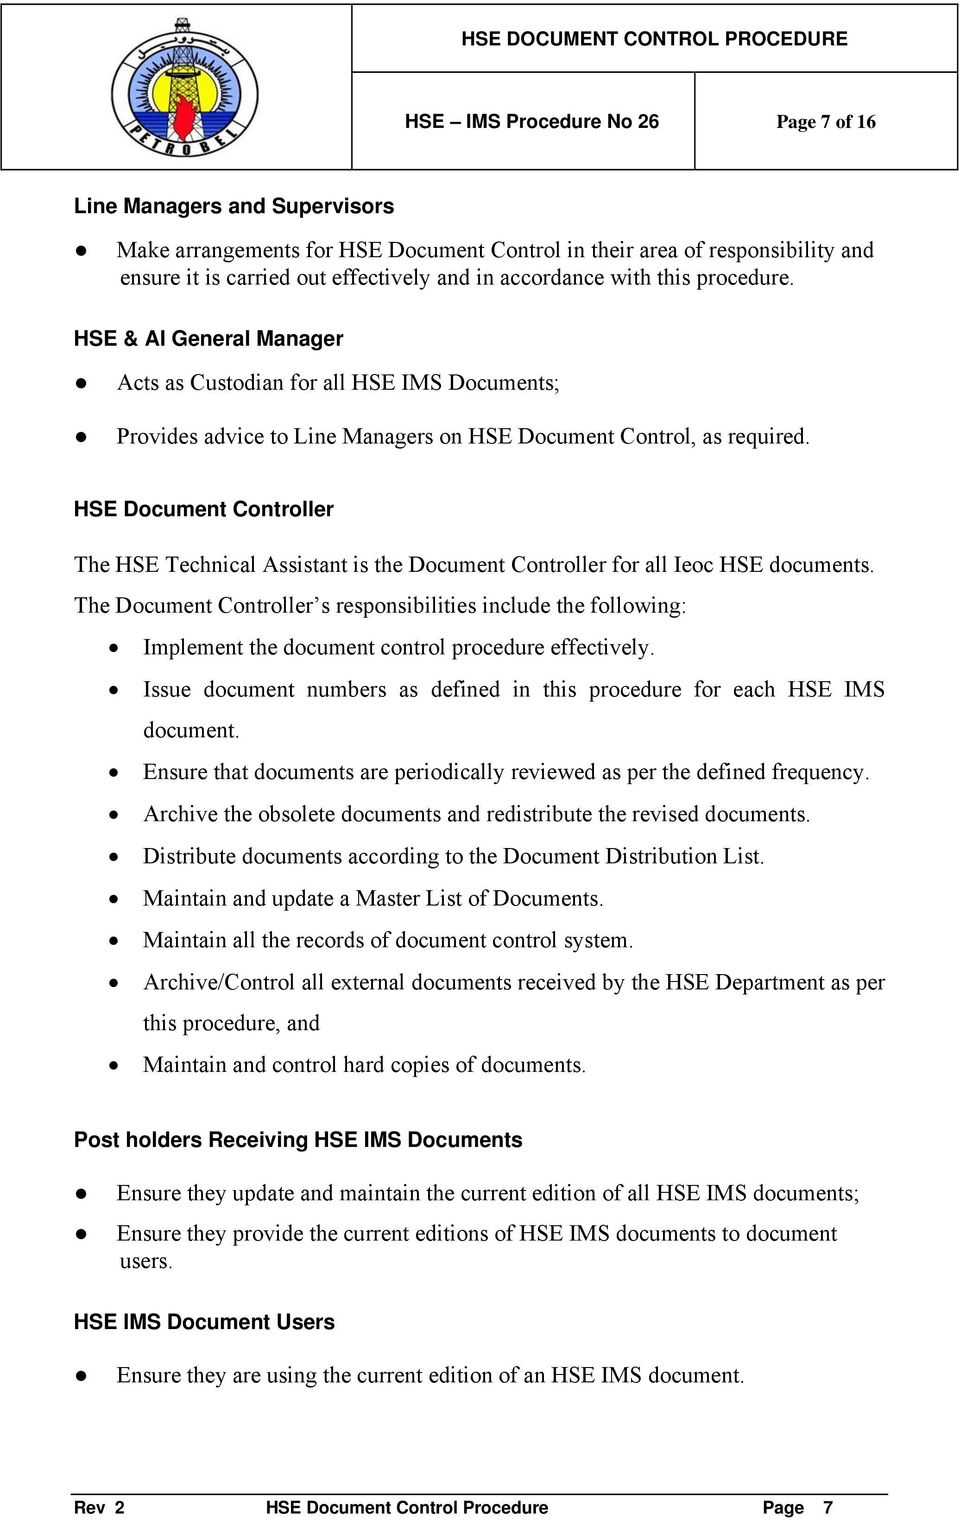 hse document control procedure pdf hse document controller the hse technical assistant is the document controller for all ieoc hse documents